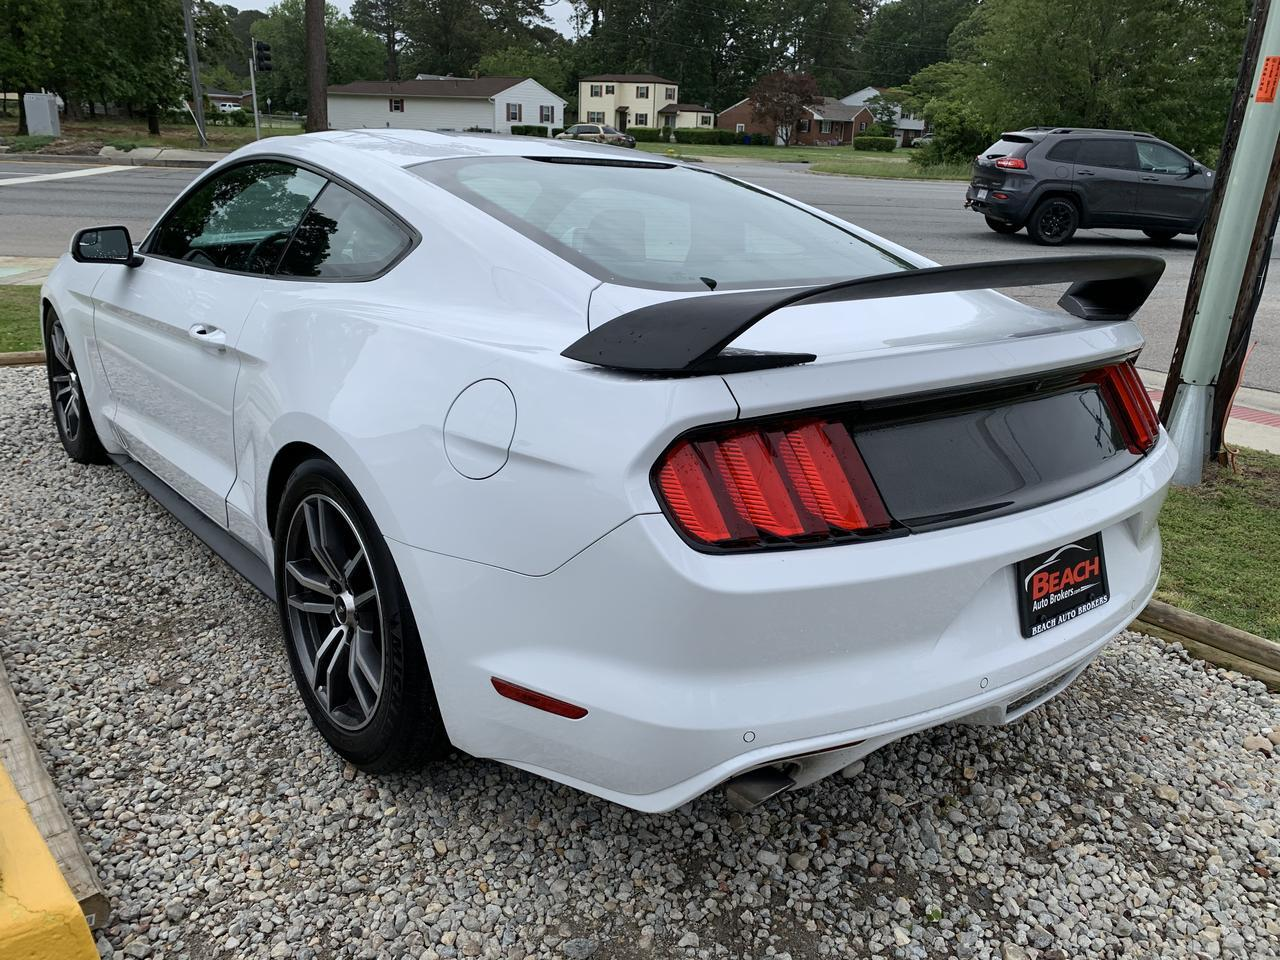 2015 FORD MUSTANG ECOBOOST, WARRANTY, MANUAL, BLUETOOTH, NAV, AUX/USB PORT, KEYLESS START, CLEAN CARFAX! Norfolk VA